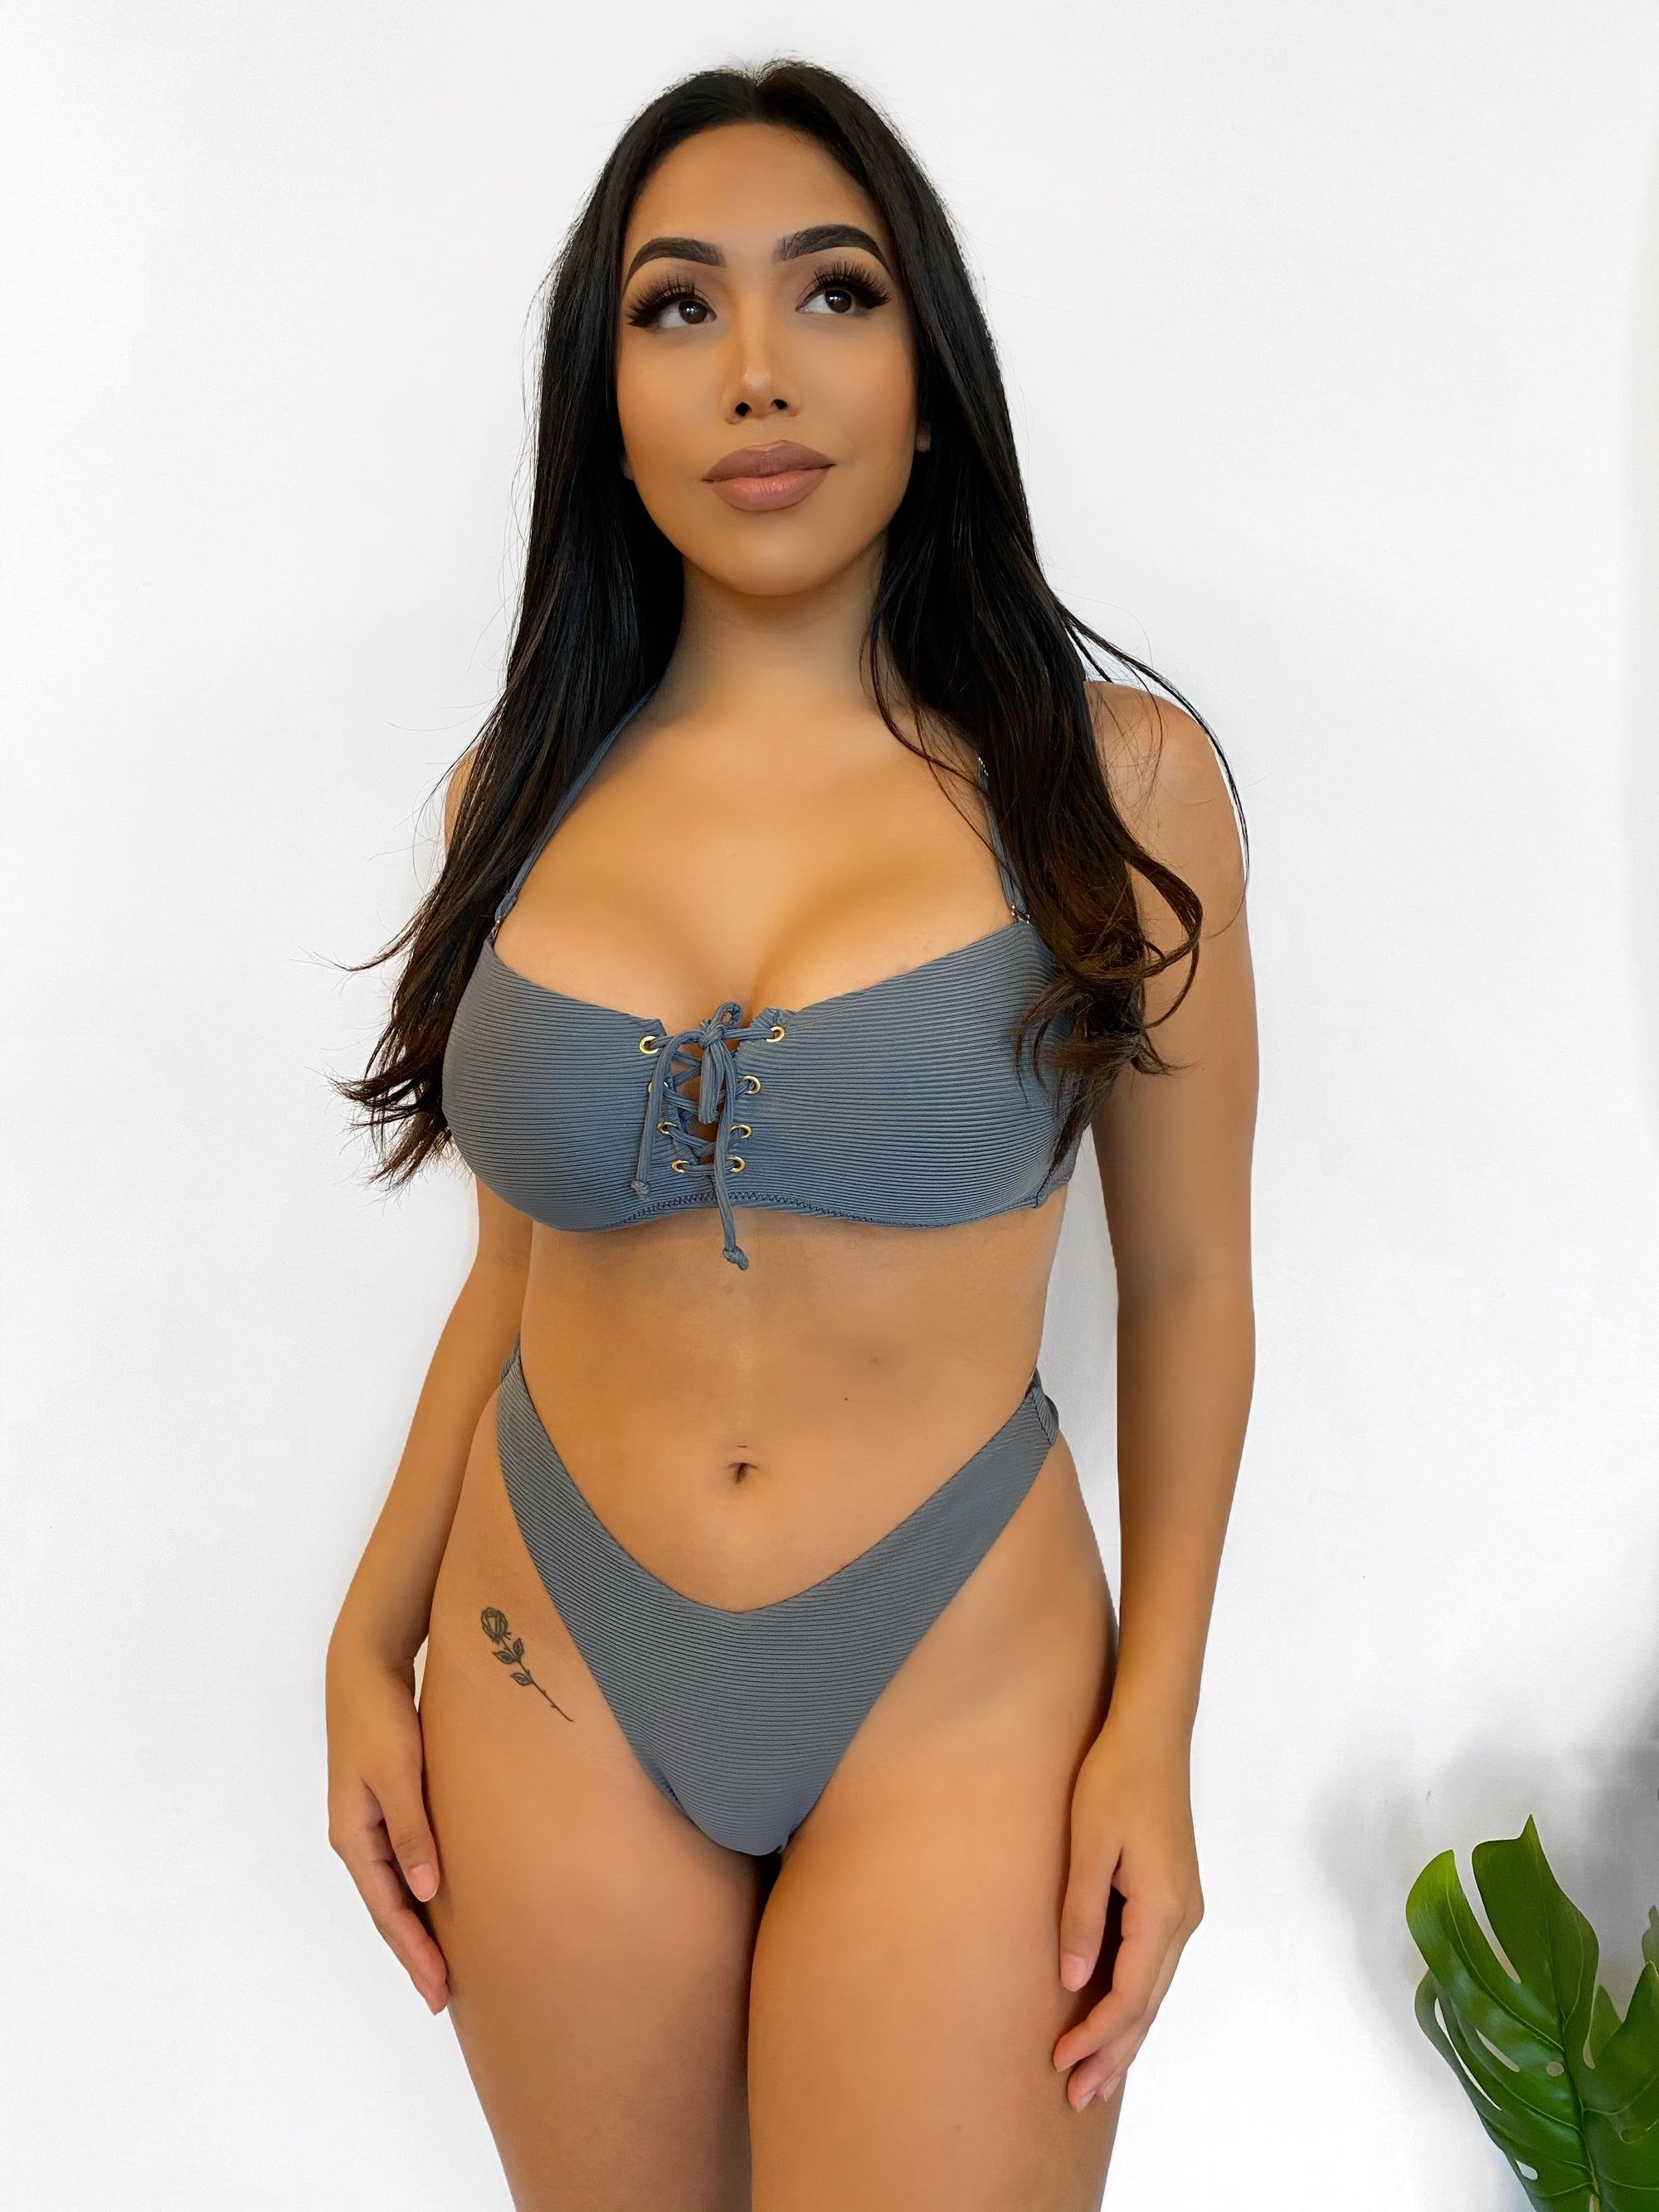 ribbed grey 2 piece bathing suit, criss-cross, gold tone loops, spaghetti strap, high rise bottoms, cheeky bottoms